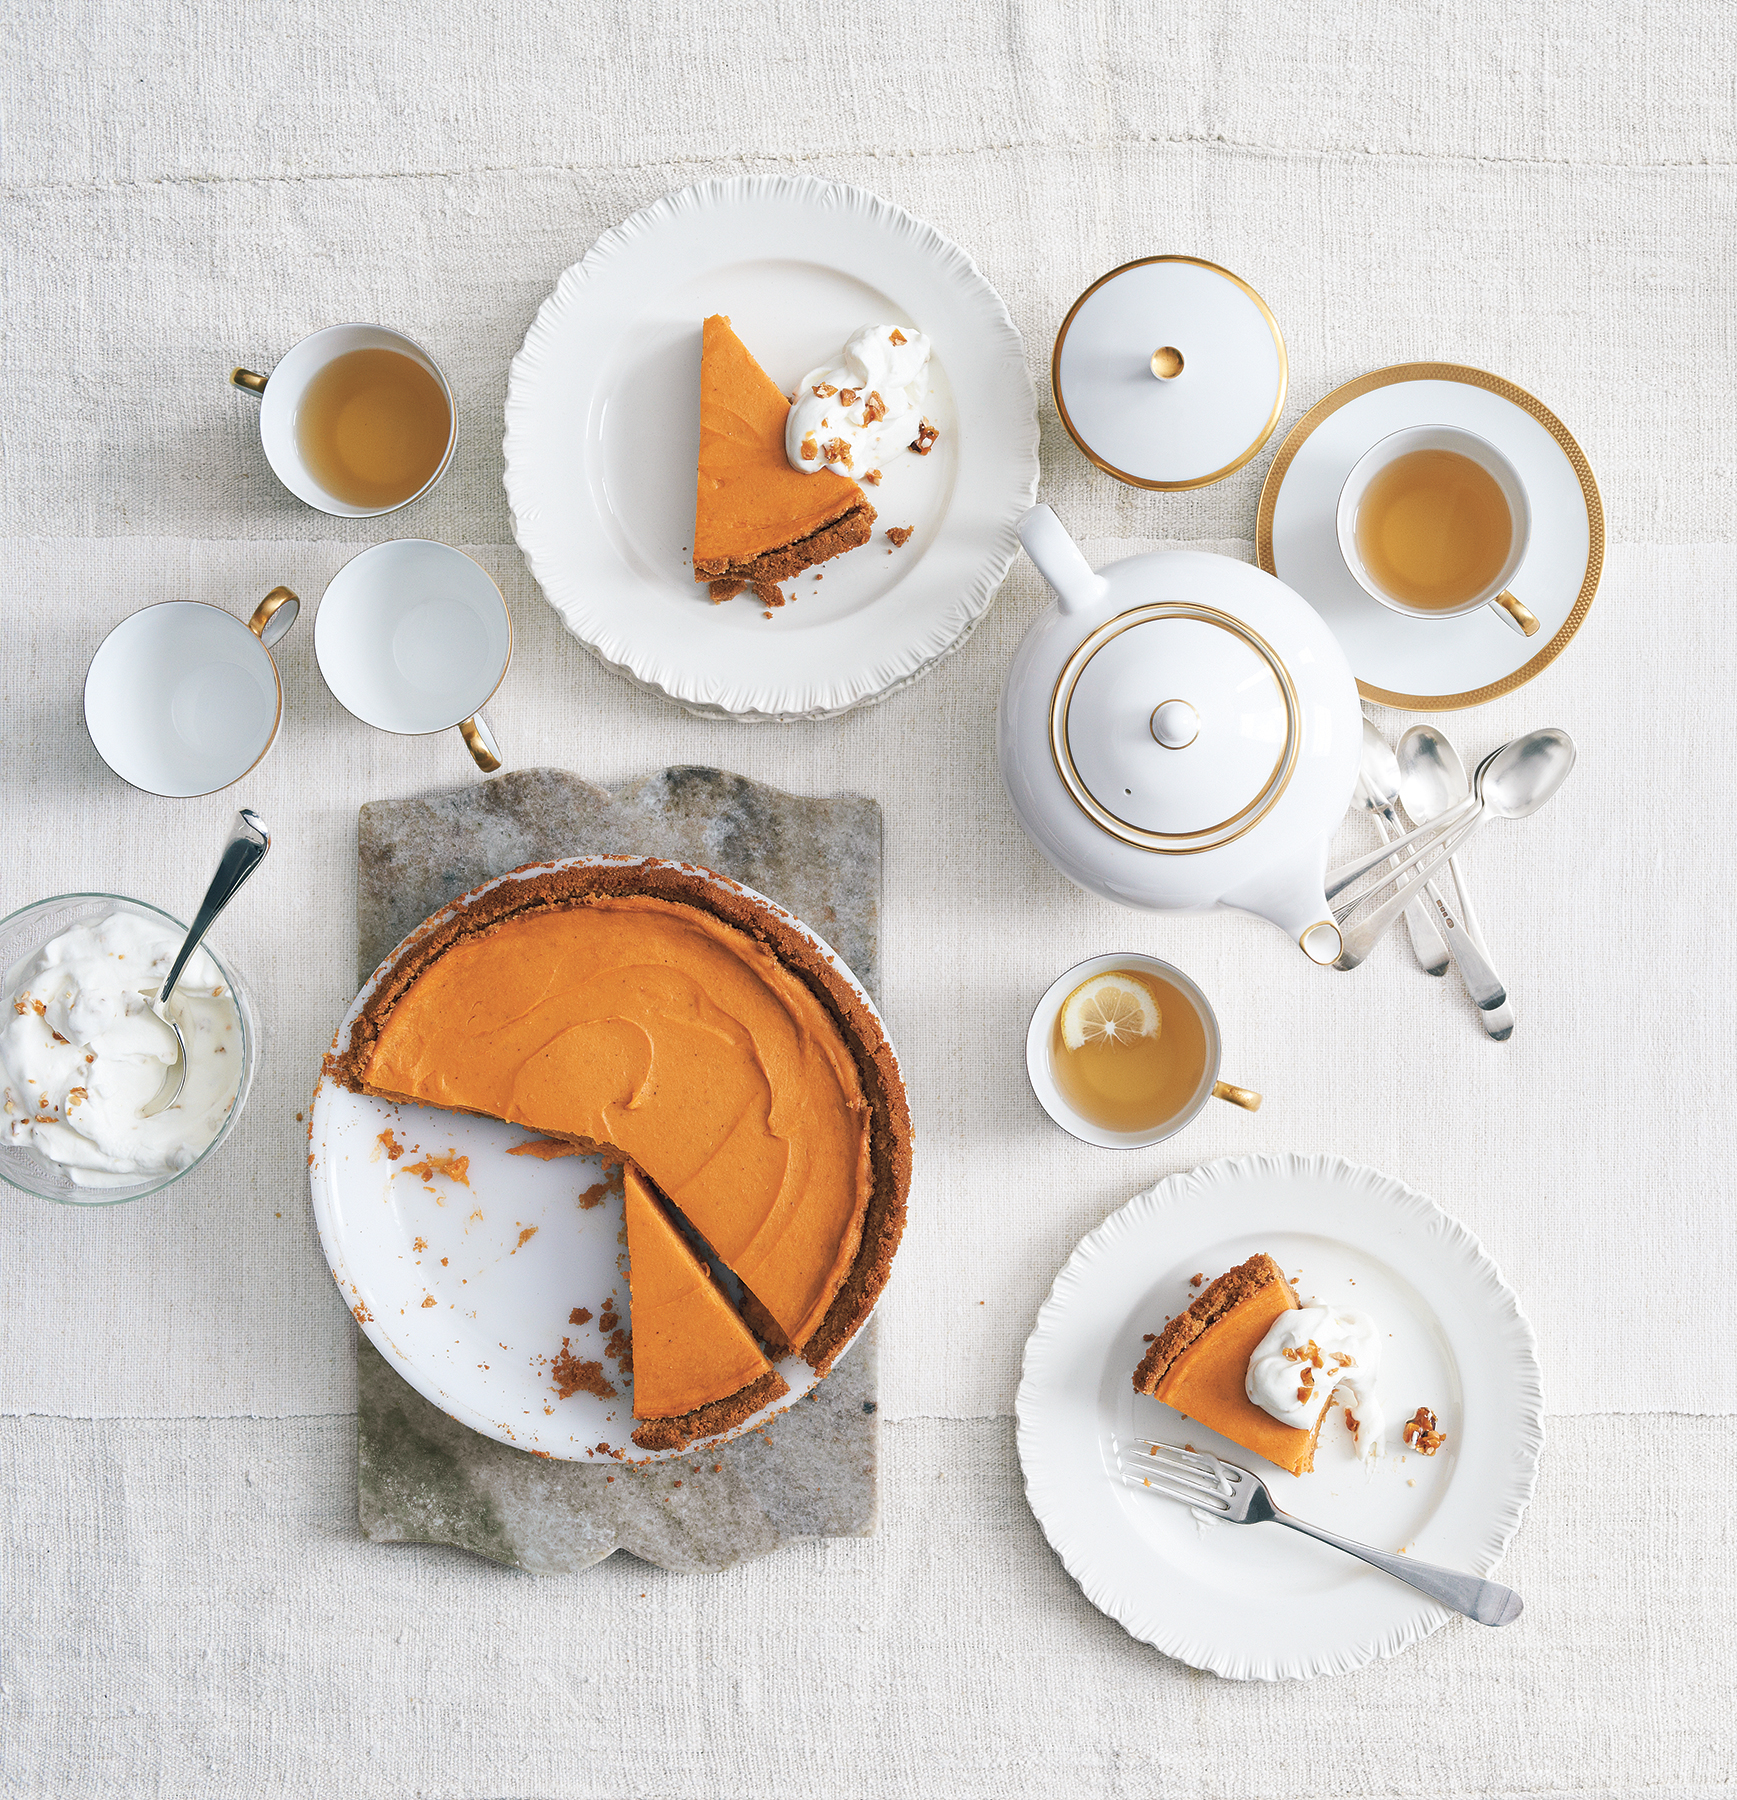 Sweet Potato Pie With Candied Nut Cream